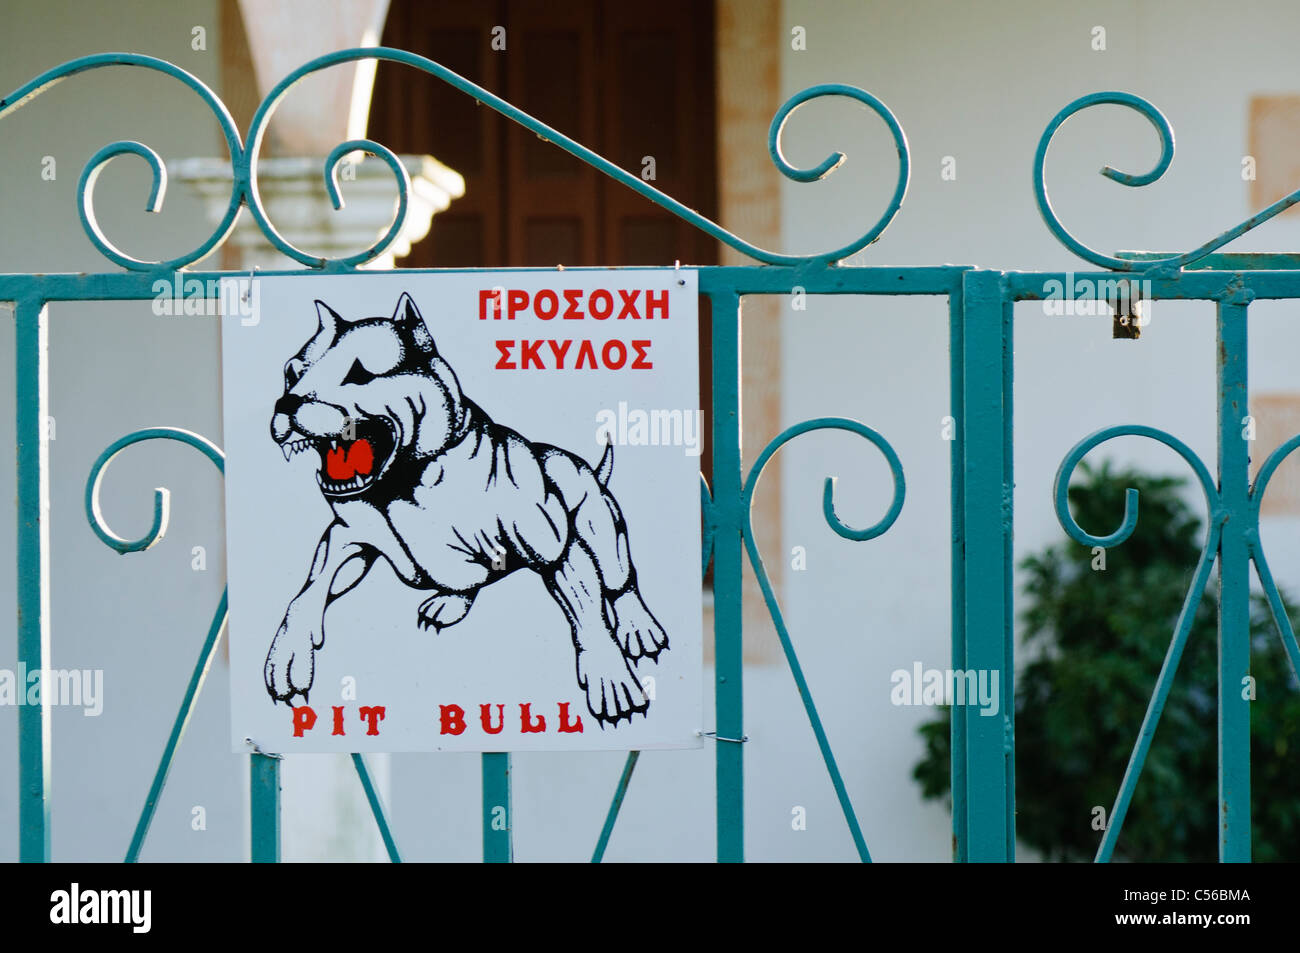 Beware of the pit bull dog sign in English and Greek - Stock Image